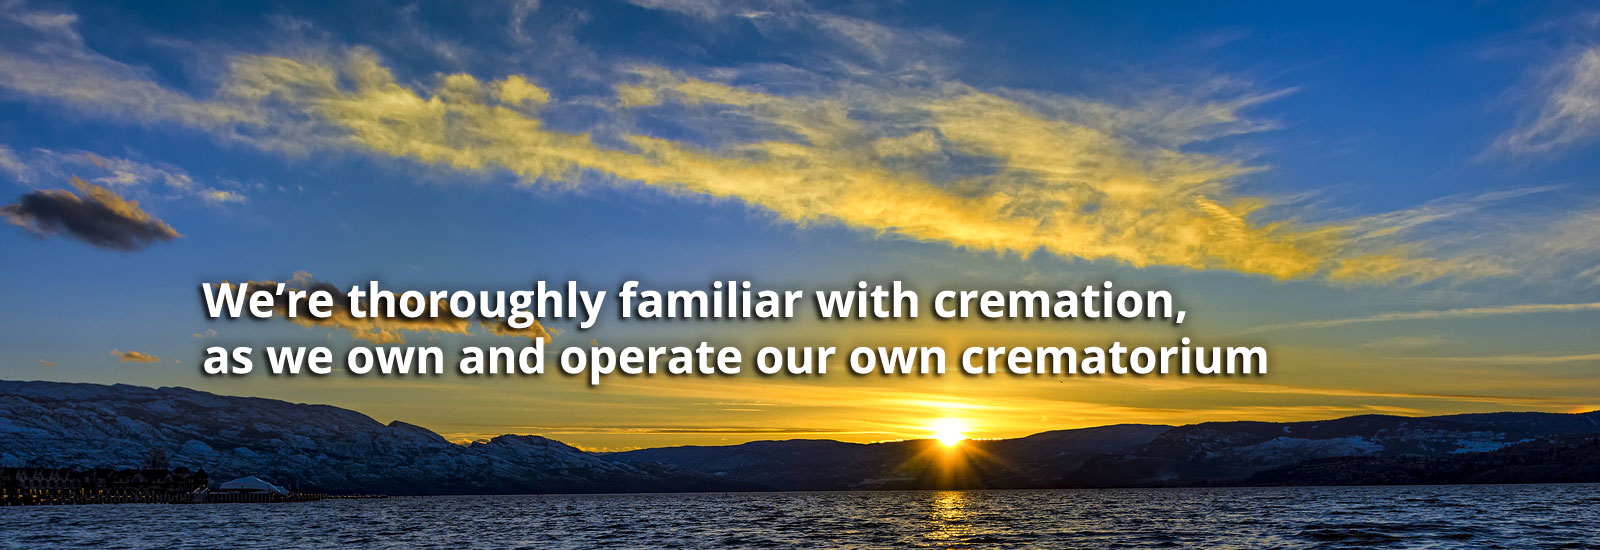 We're thoroughly familiar with cremation, as we own and operate or own crematorium